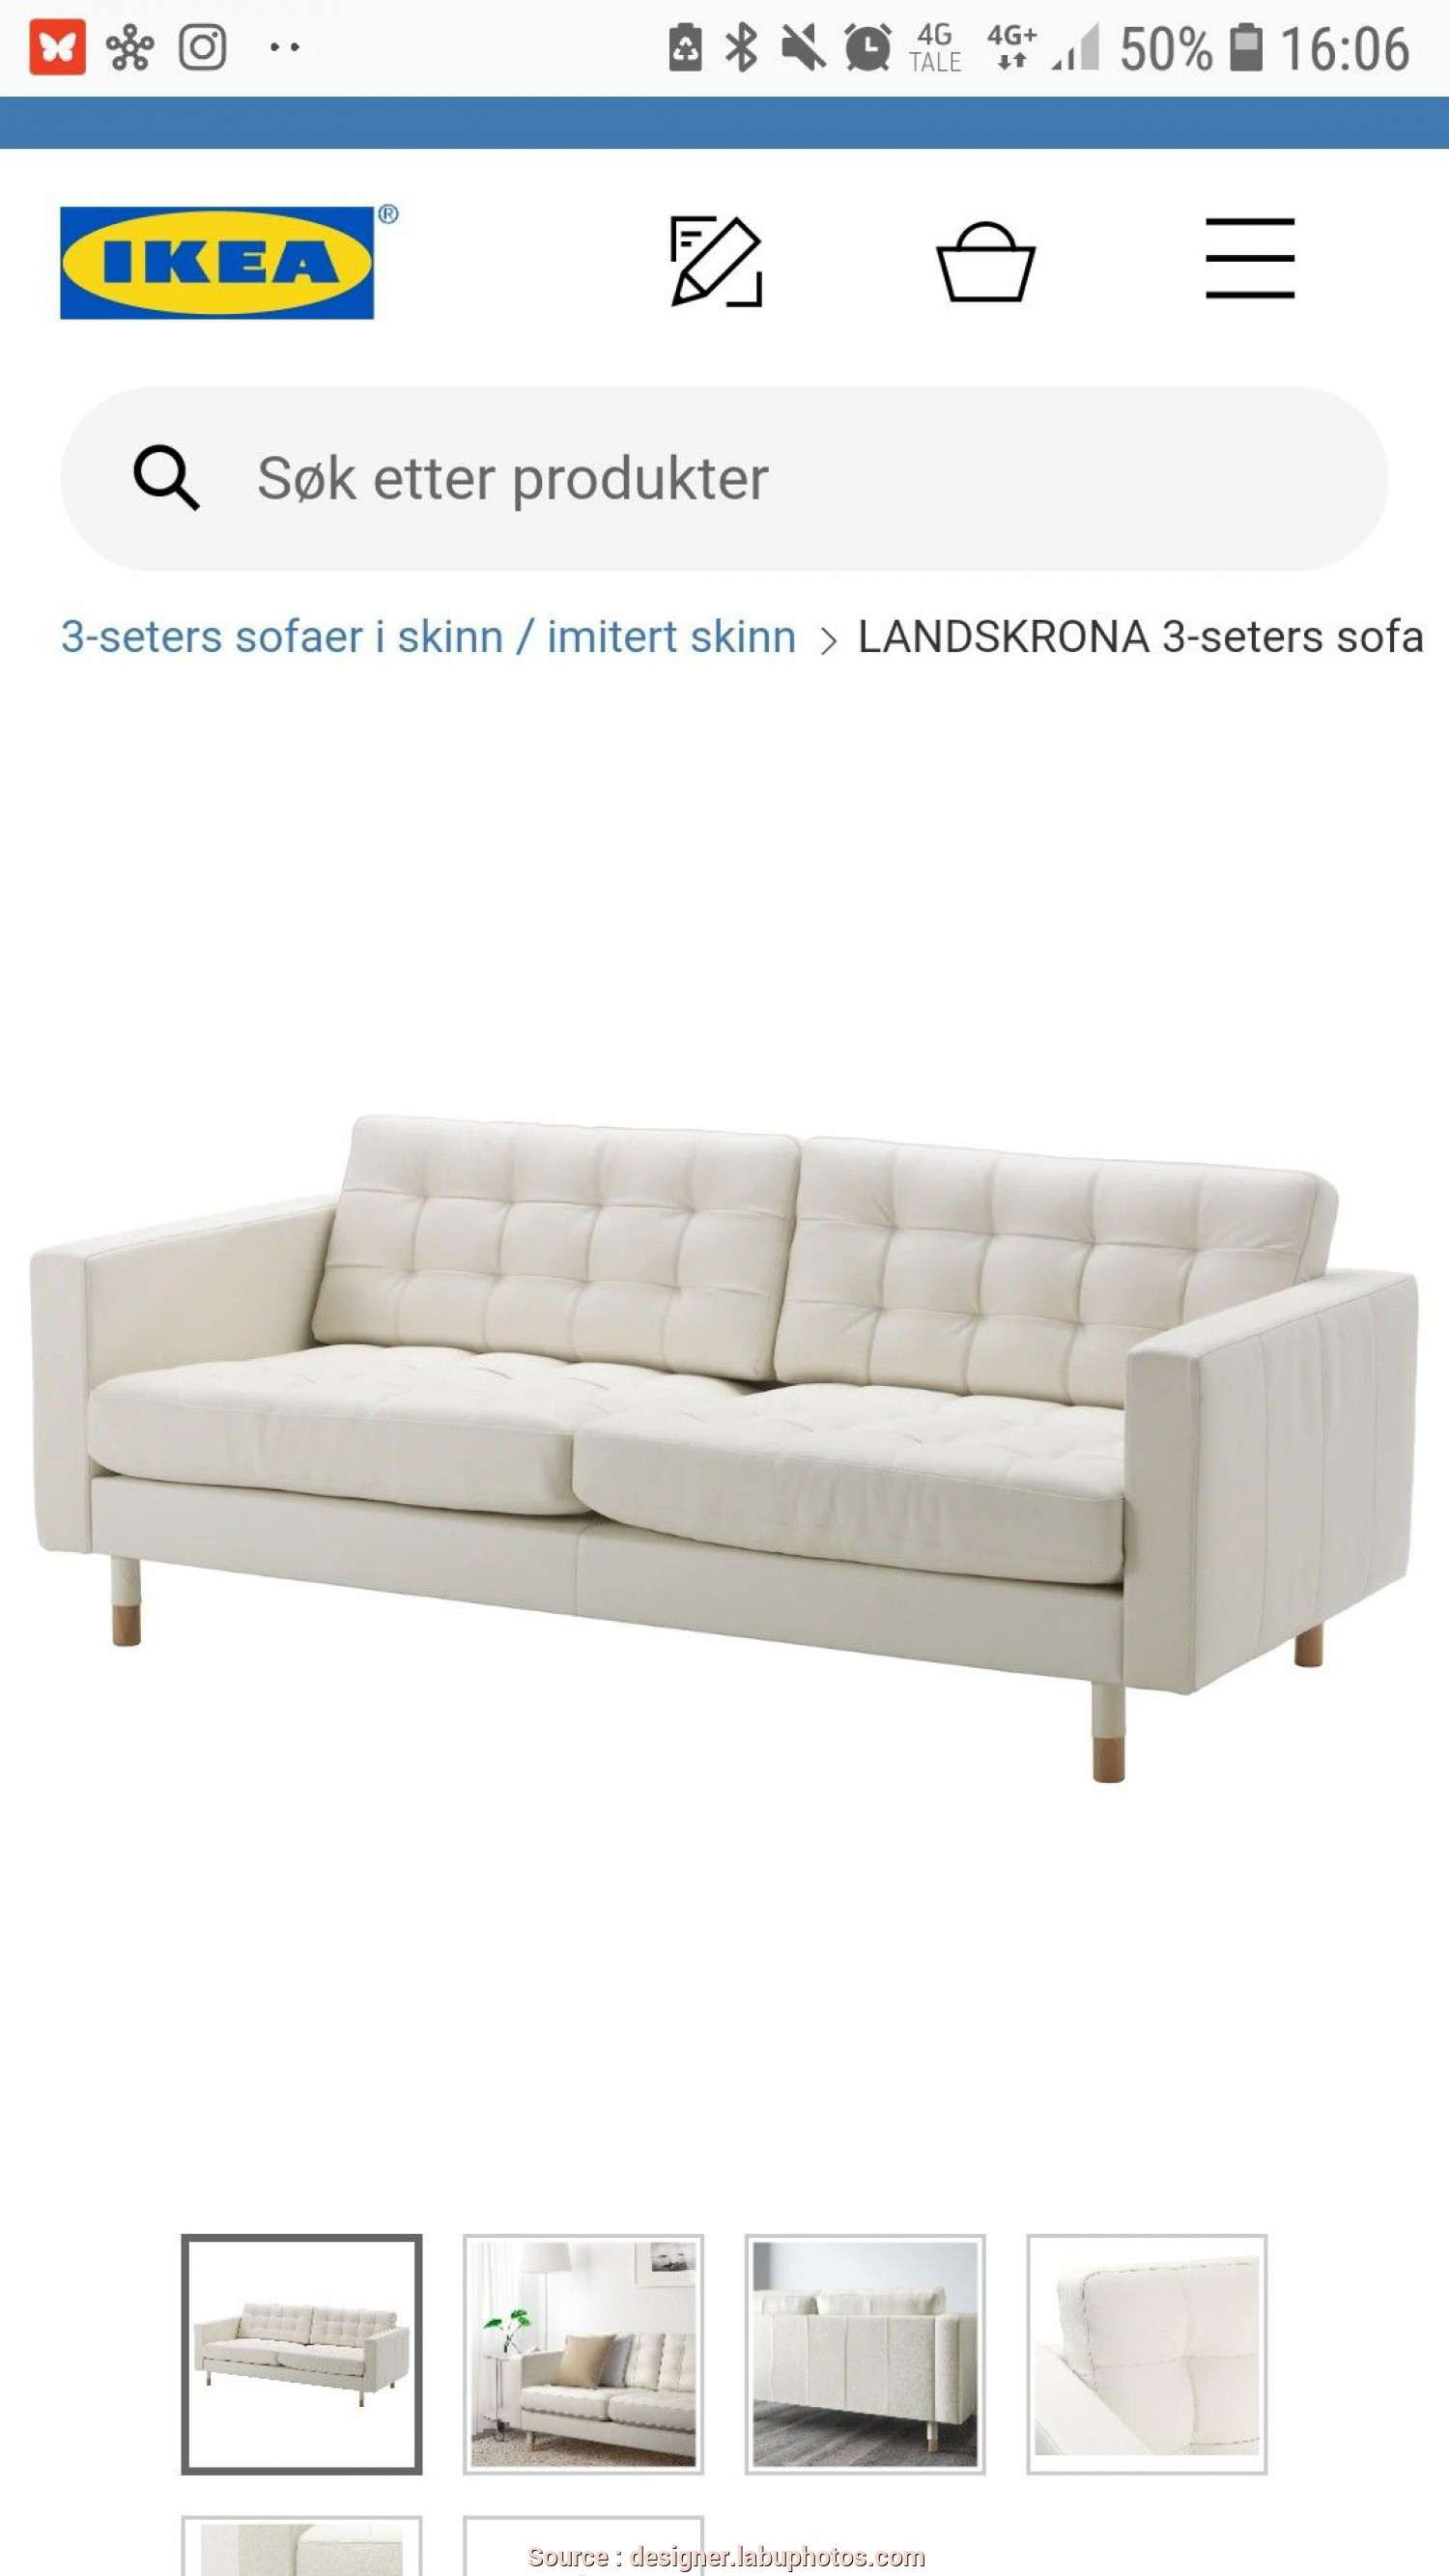 Asarum Ikea Bewertung, Affascinante Ikea Sove Sofa. Good Cheap Ikea Landskrona Seat White Leather Sofa